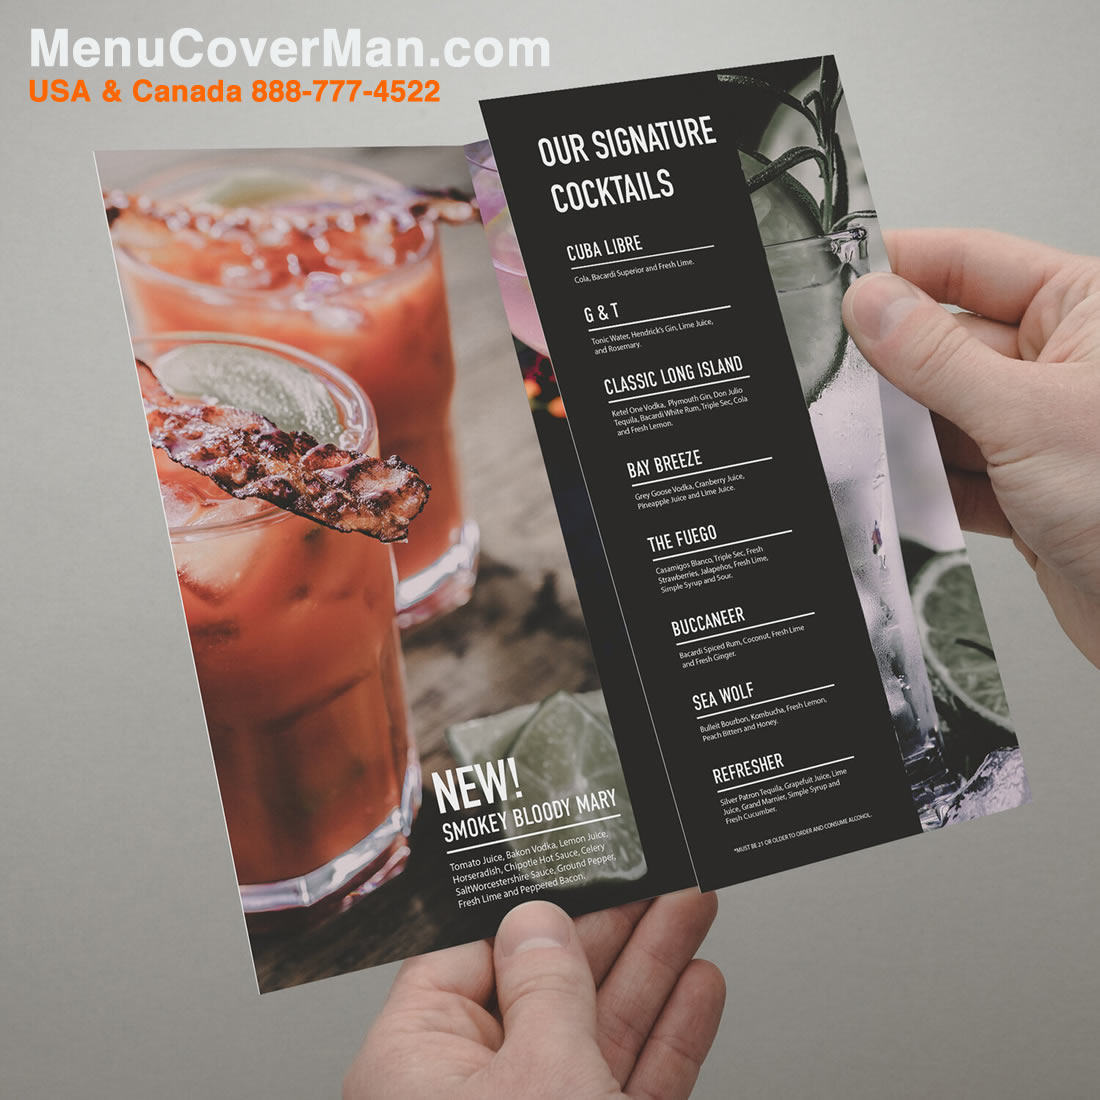 Tearproof Menus With Your Menu Imprinted Right On It.